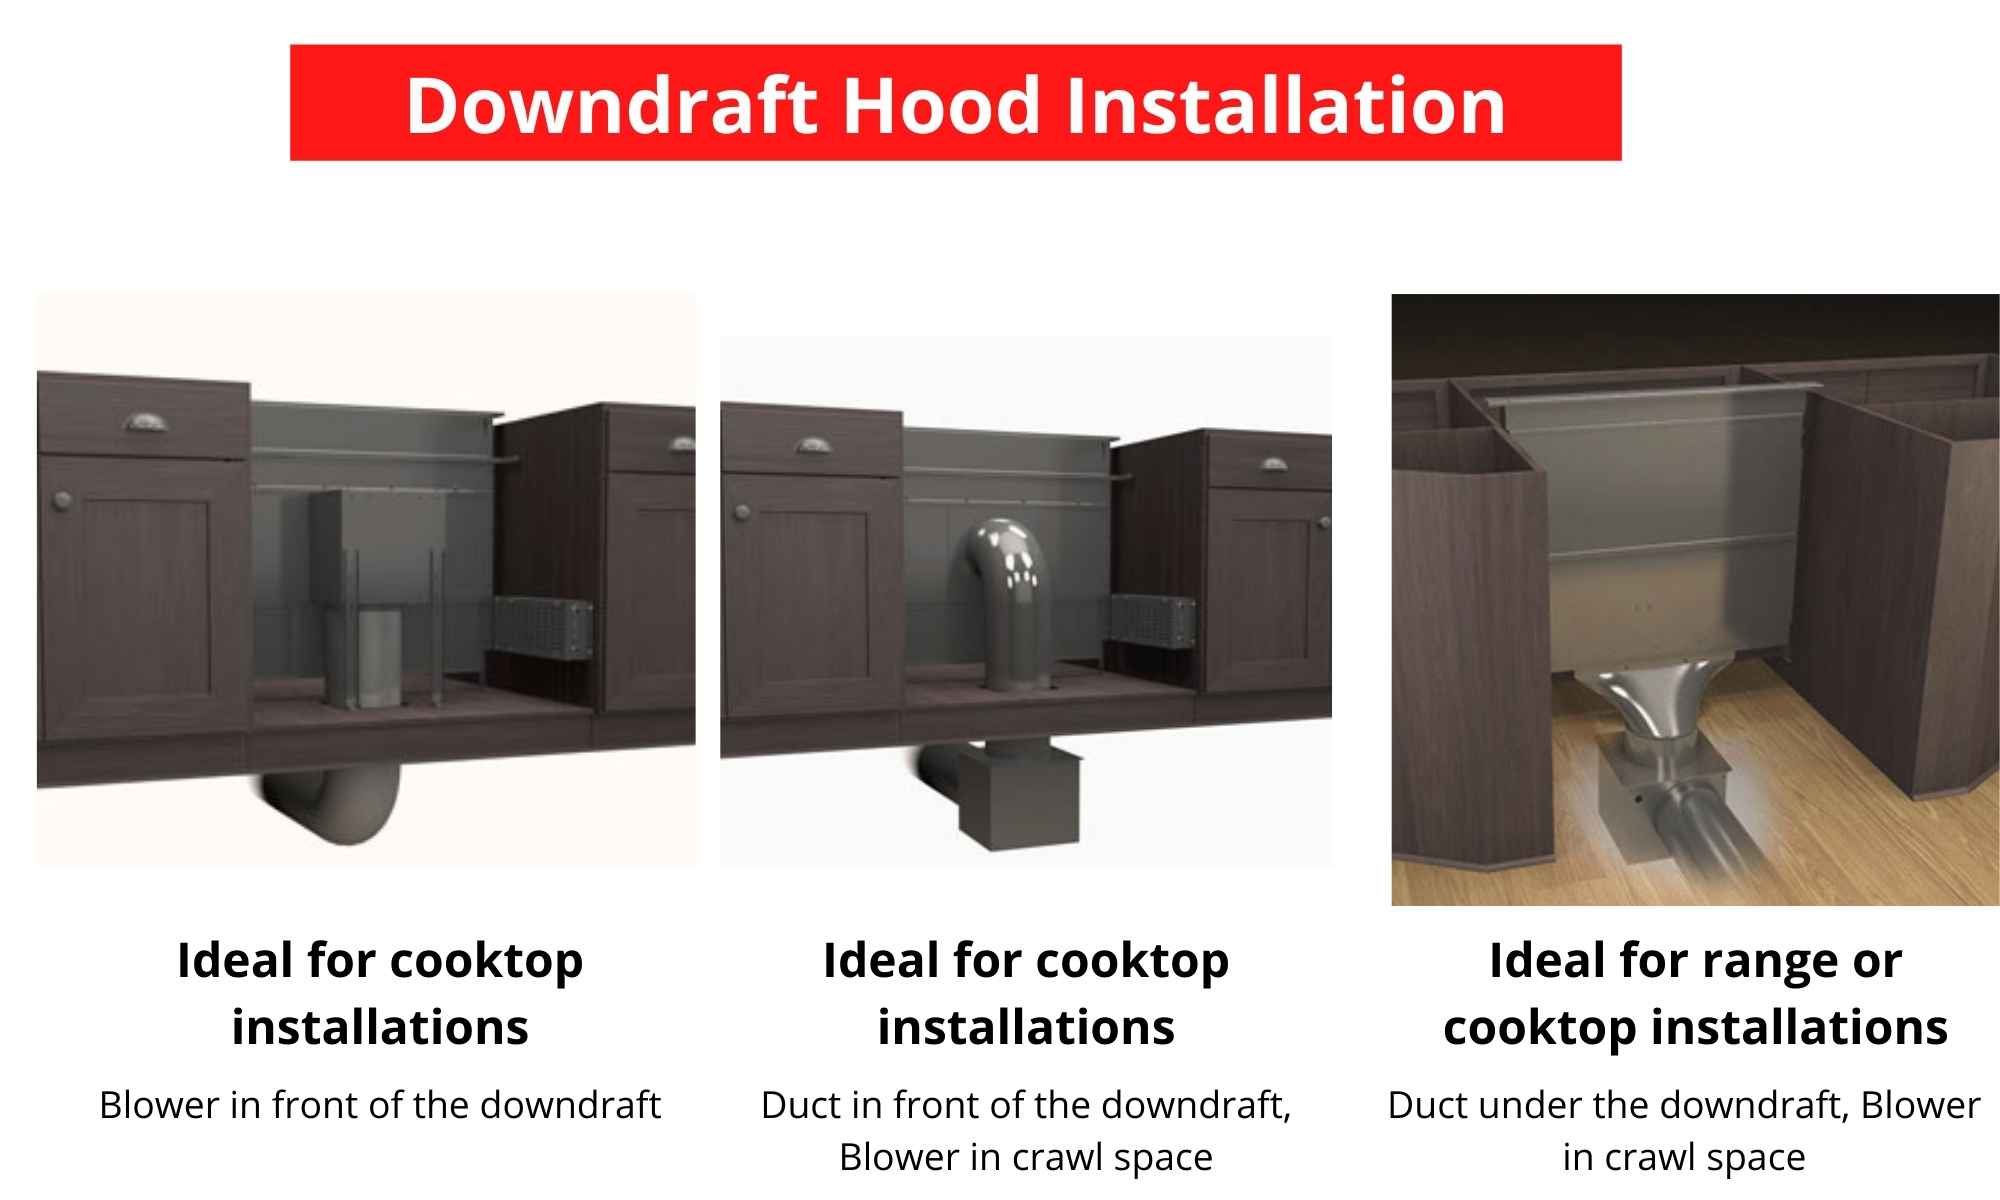 Popular downdraft hood installation options